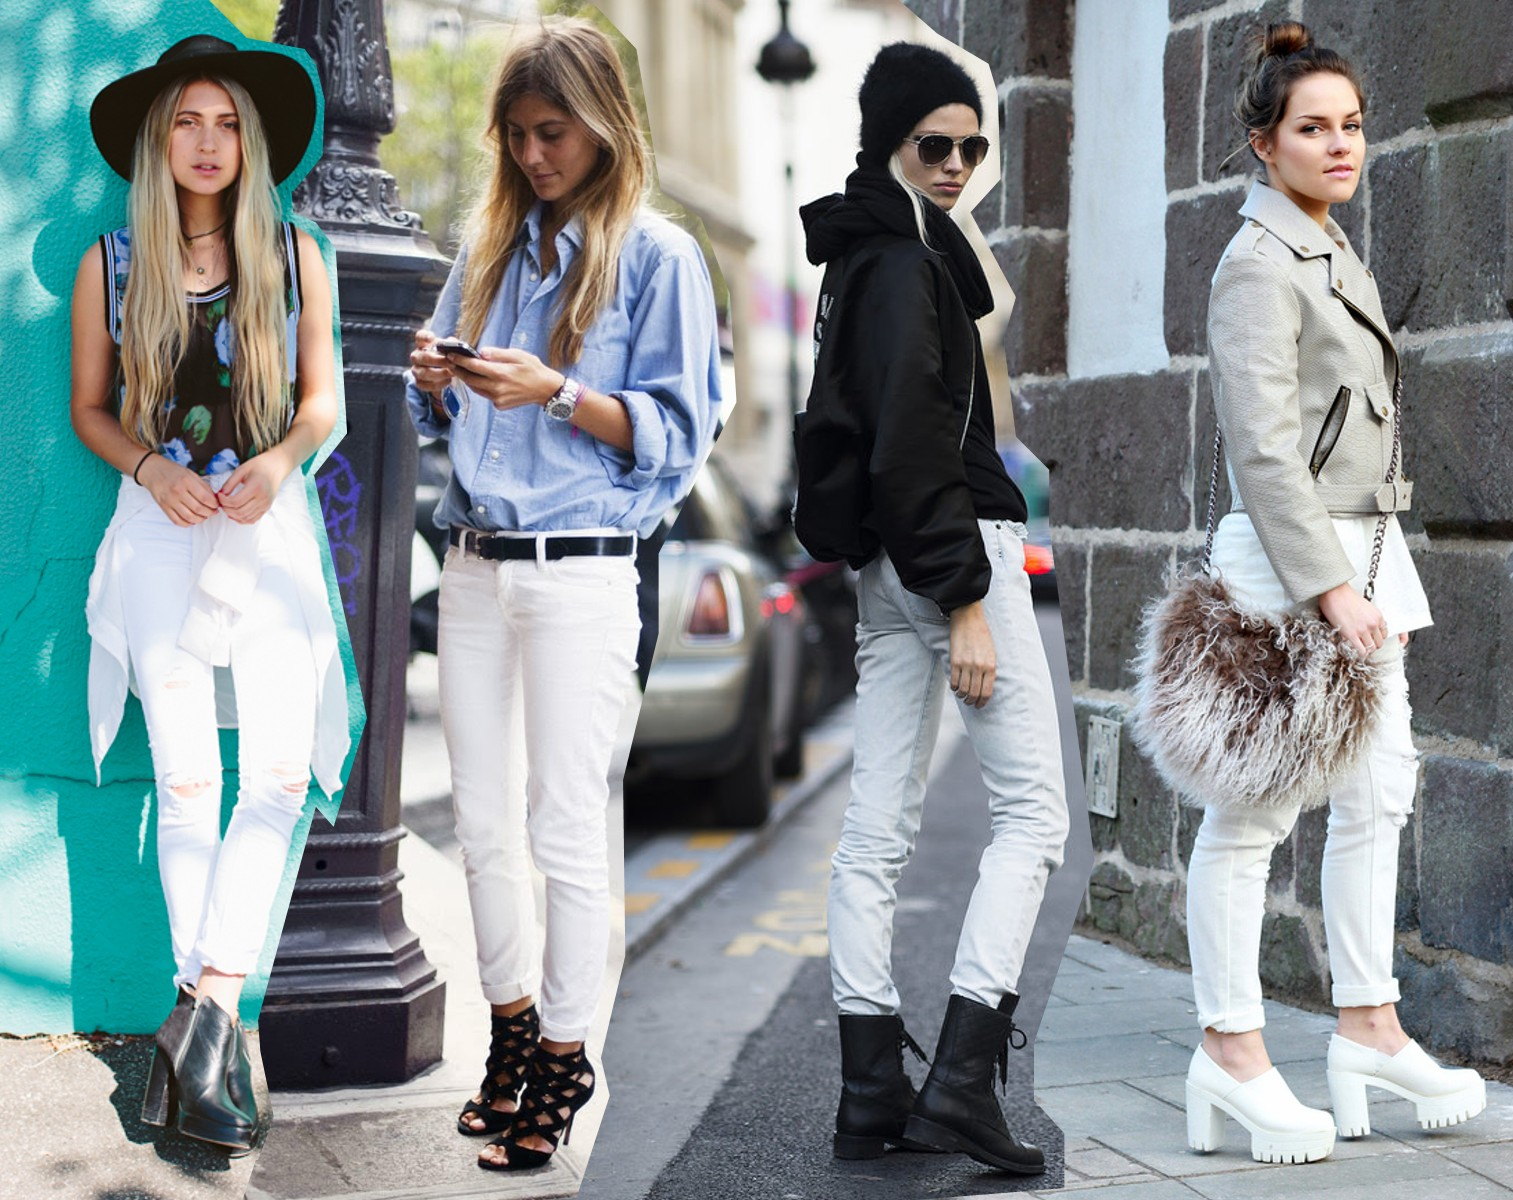 street+style+white+jeans,+ways+to+wear+white+jeans,+how+to+wear+white+jeans,+white+jeans+fashion+blog